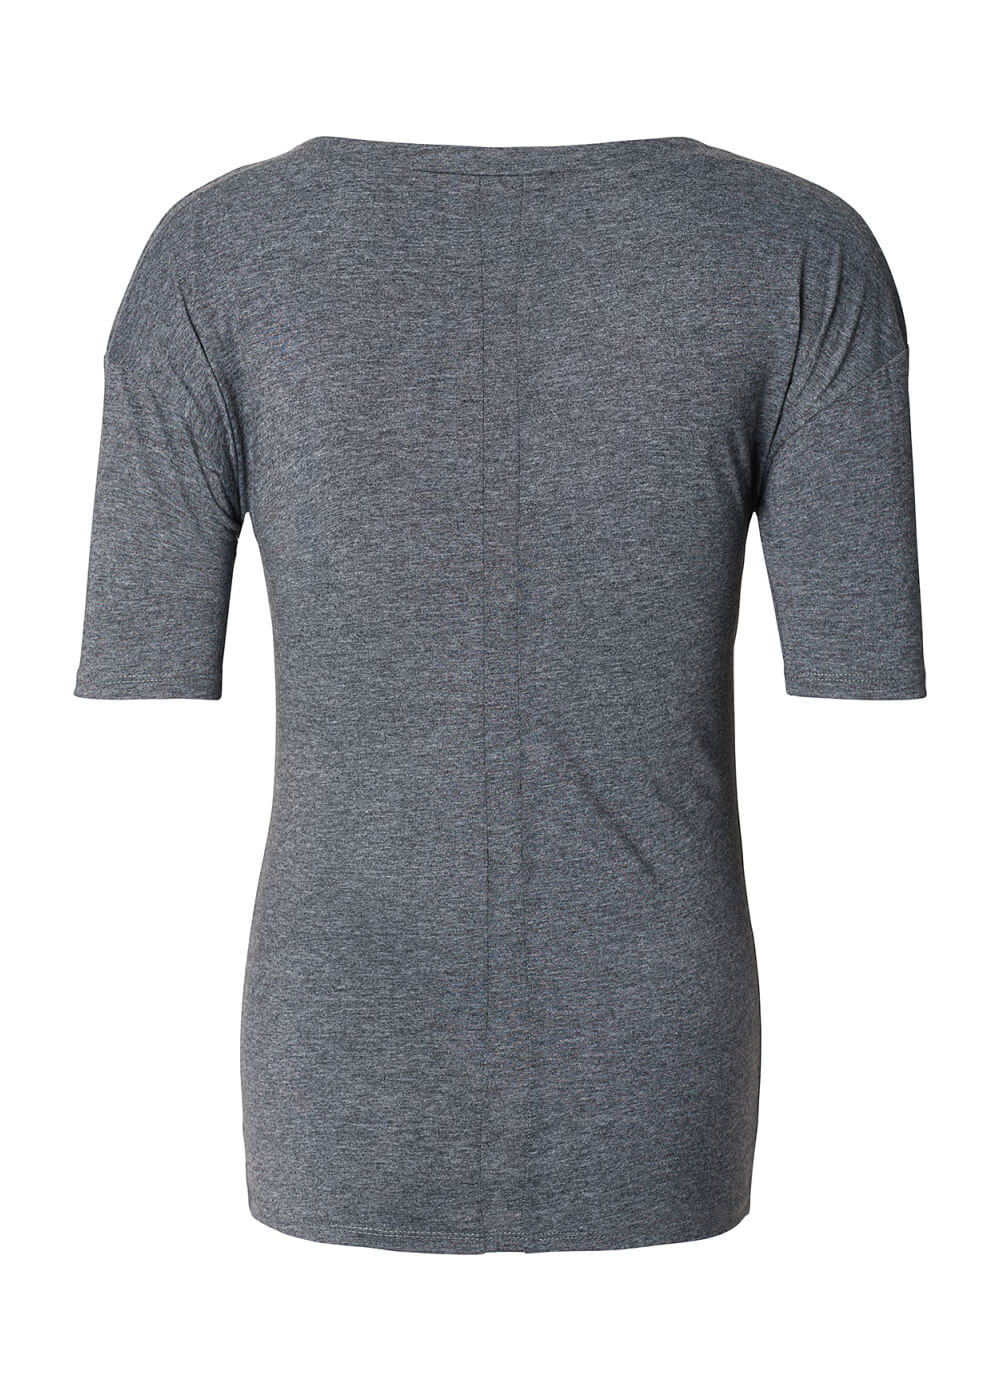 State of Mind Maternity Tee in Grey by Supermom